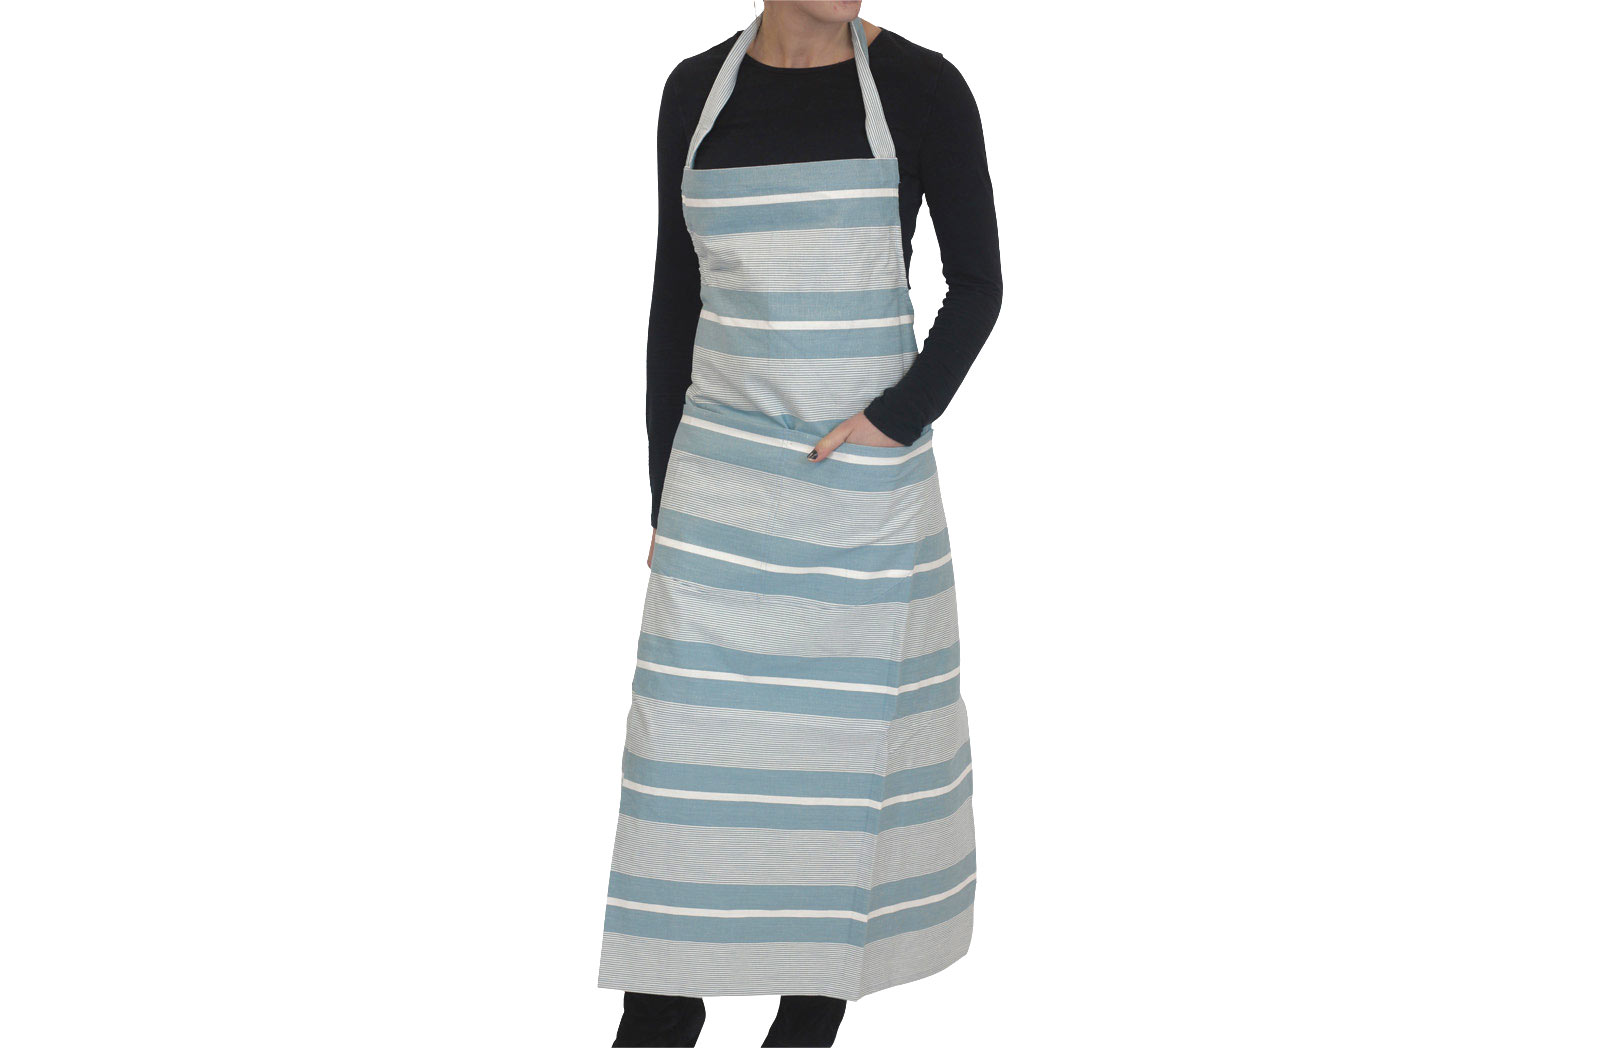 Teal Striped Apron Teal  Aqua  White Stripes